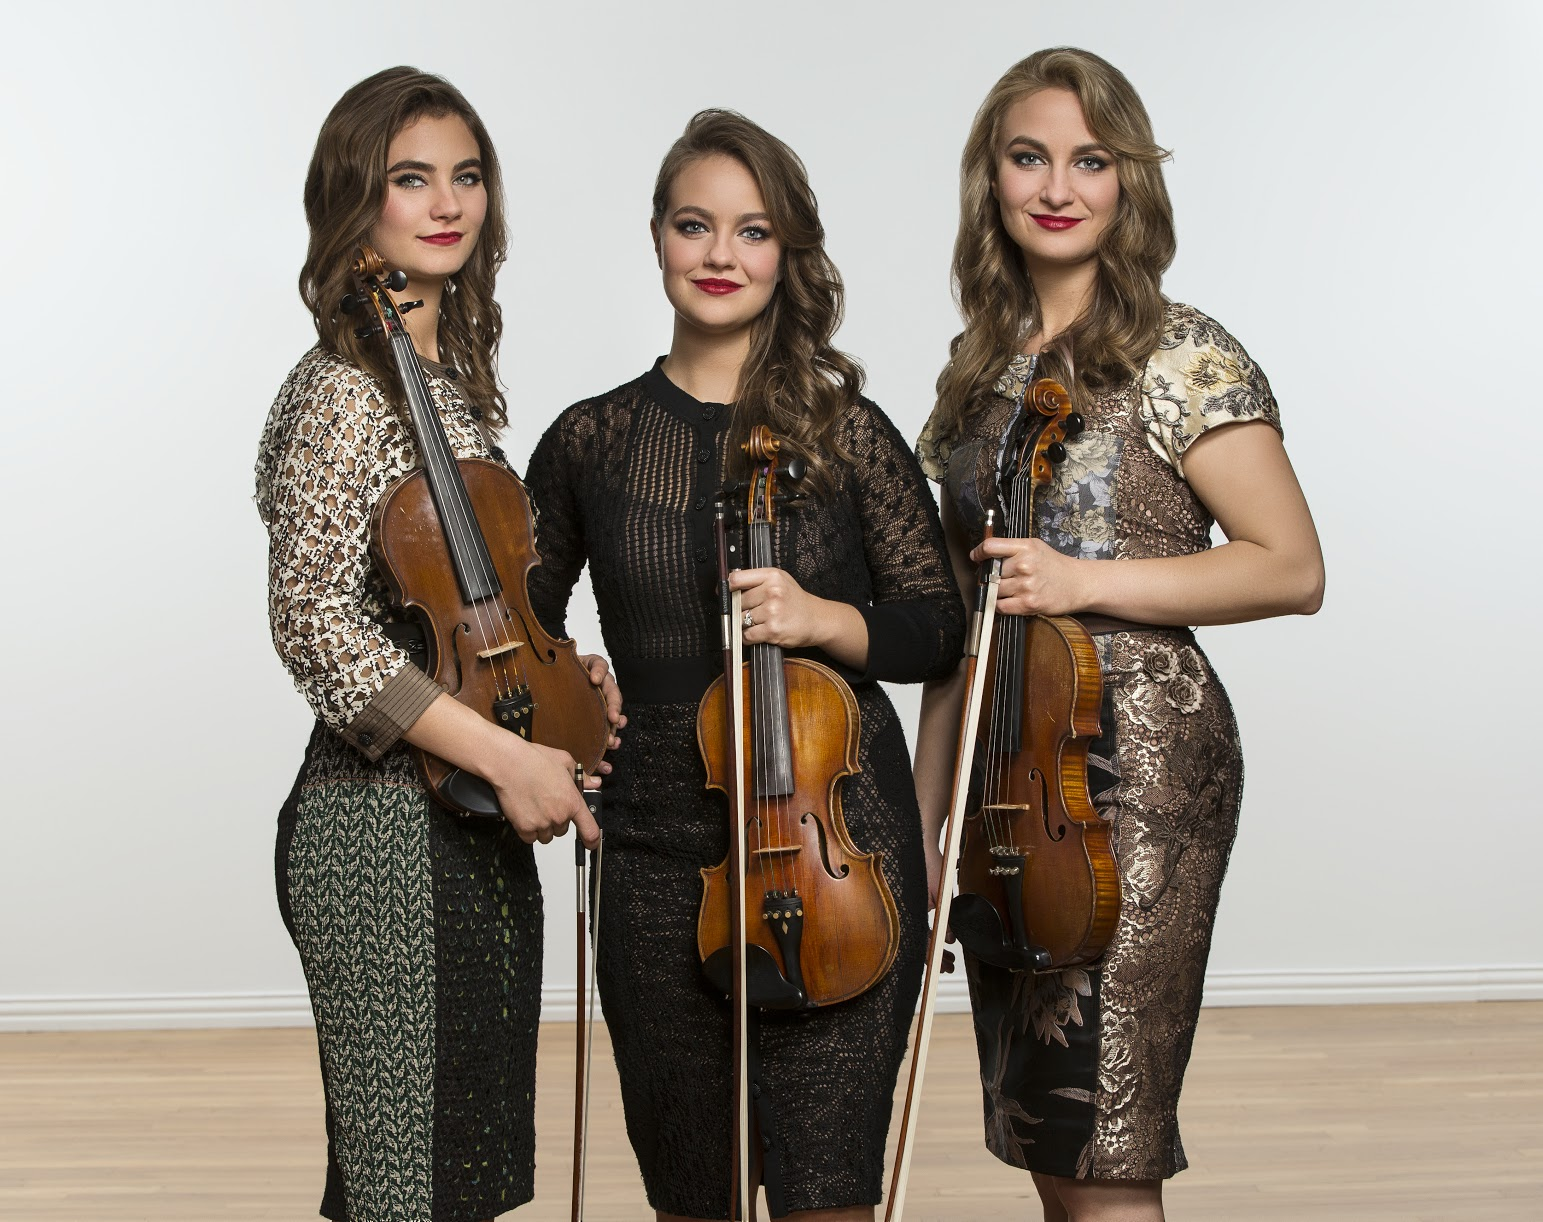 Caption: The Quebe Sisters of Texas present swing fiddle tunes and triple-harmony singing at the Blue Ridge Music Center this season.  , Credit: Stewart Cohen